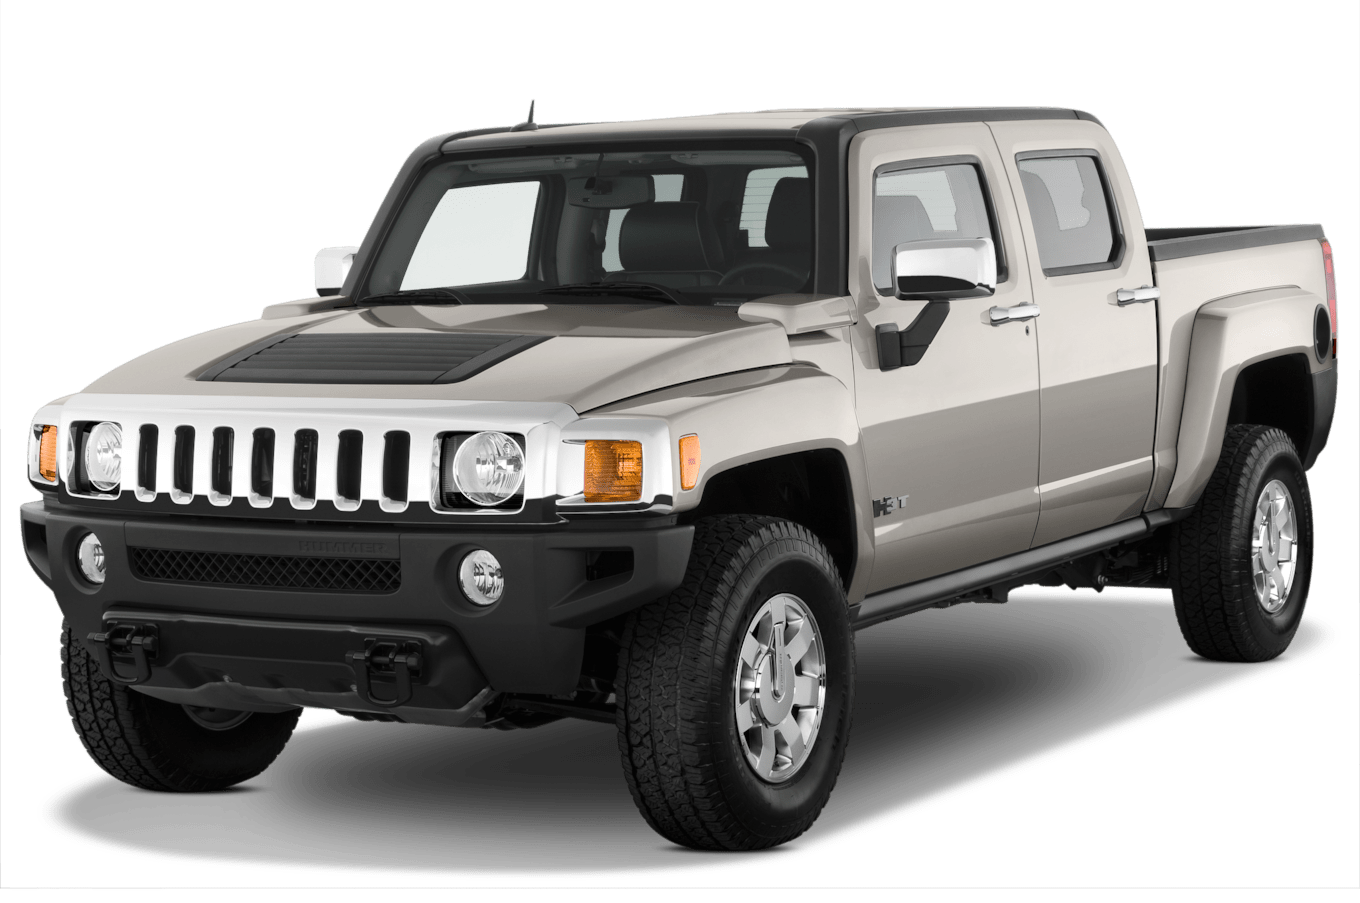 2009 Hummer H3T Reviews and Rating